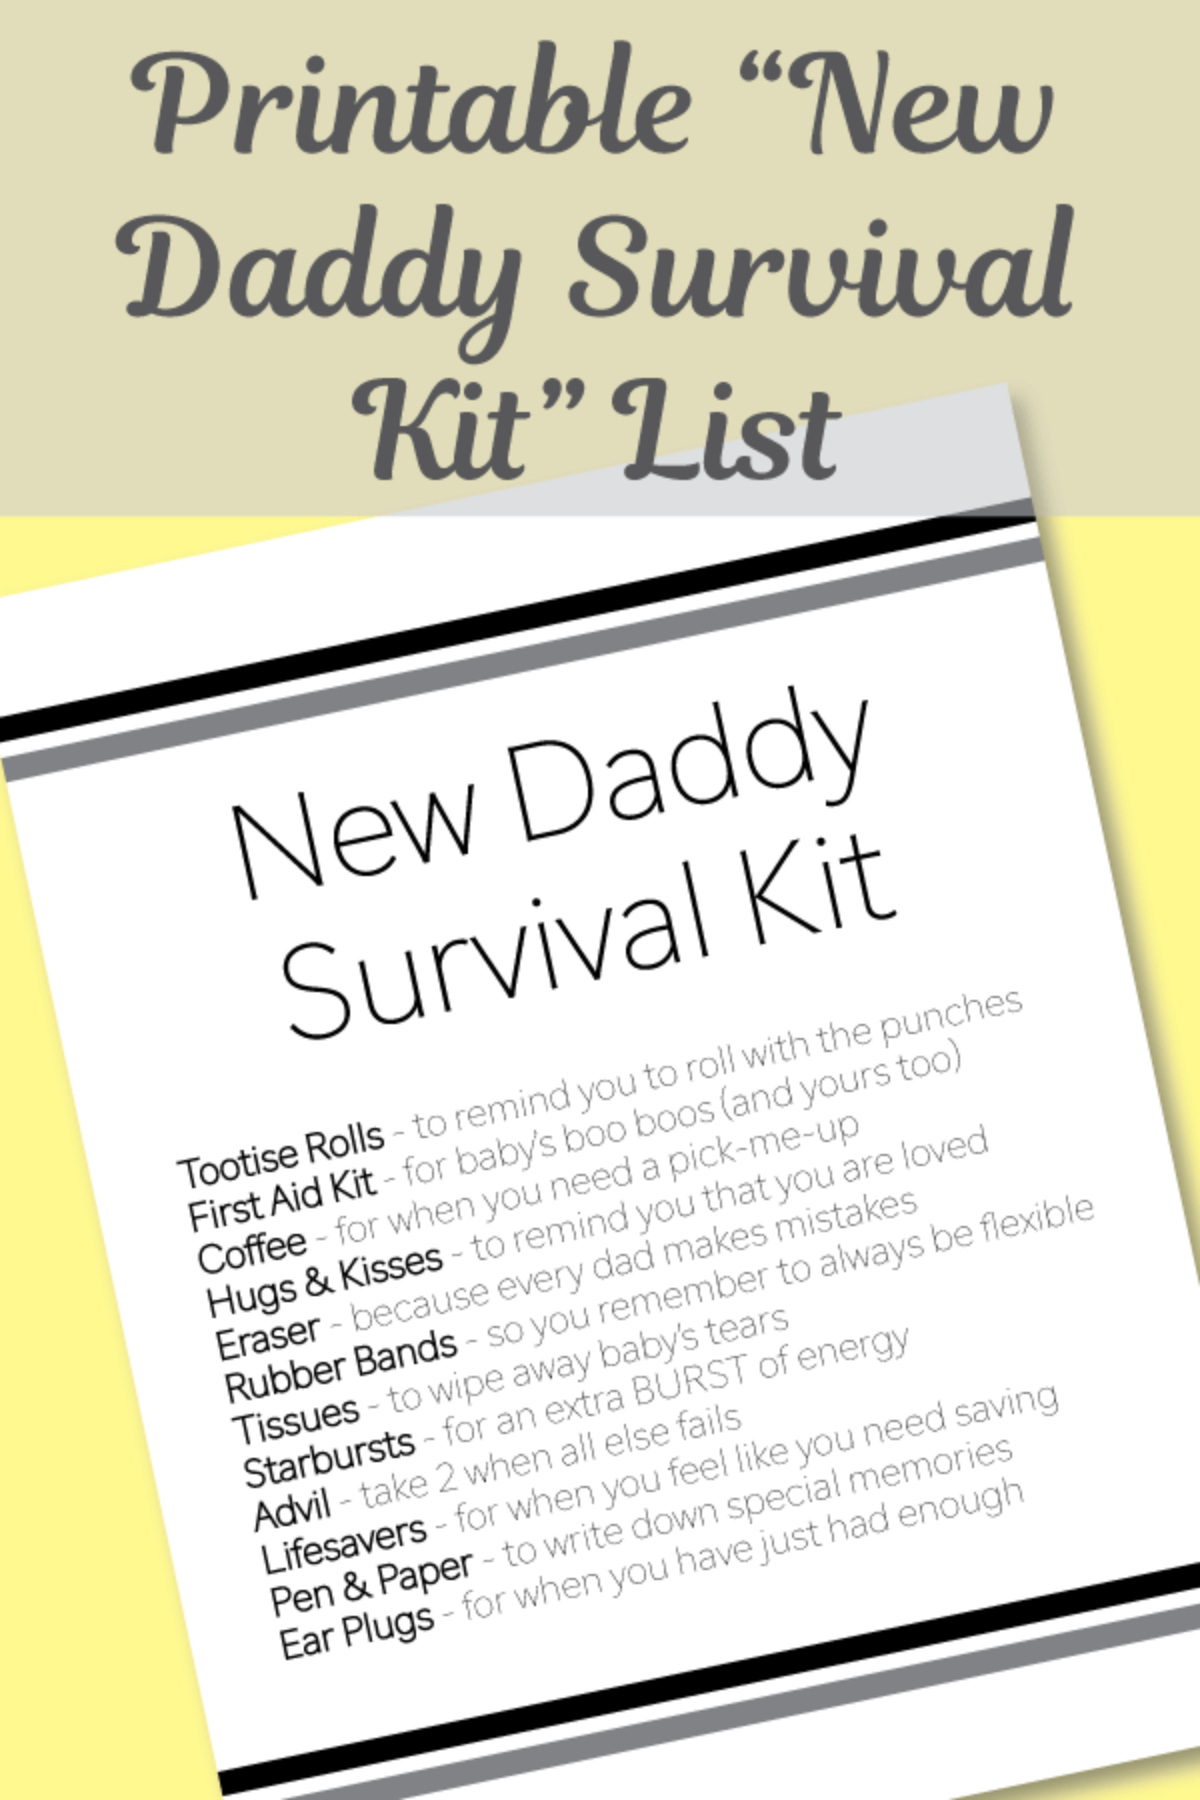 FREE Printable New Daddy Survival Kit List